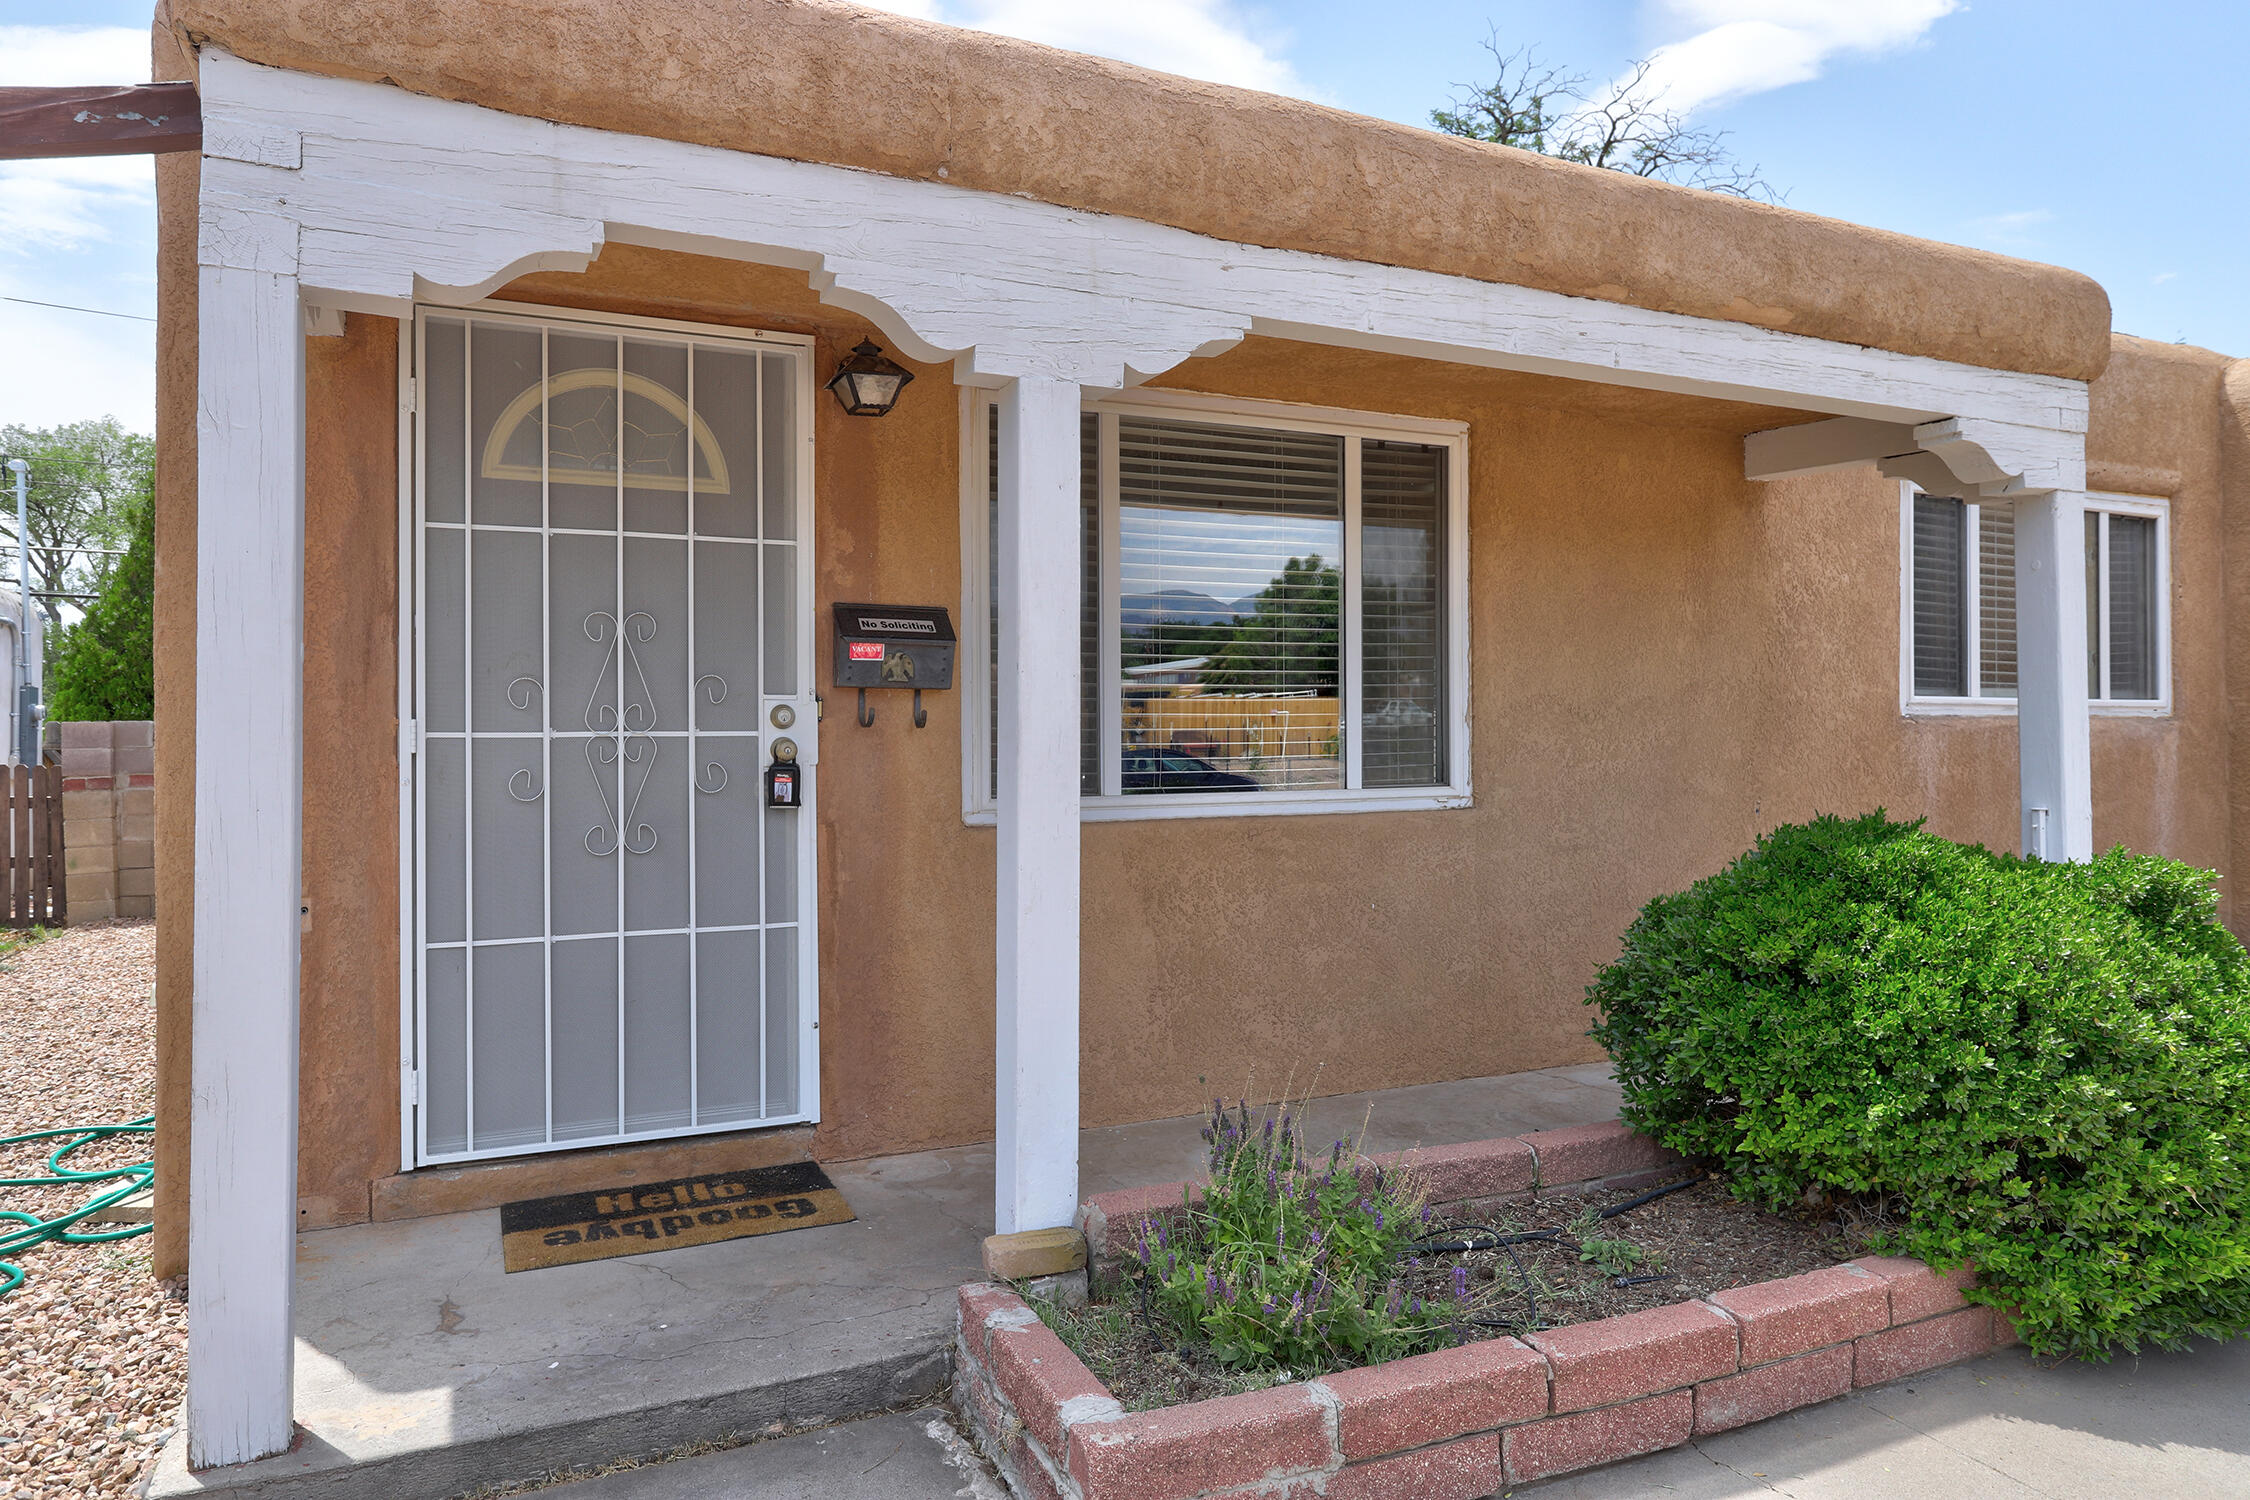 Pueblo style HOME with great curb appear is Ready for a new owner! There are 3 Bedrooms, 2 Baths, 2 Car Garage PLUS 2 Spacious Living Areas and Dining Room!! Cooks Kitchen with tile floors and pantry. Baths are updated! All Bedrooms are nice size. Family Room is open to Walled Backyard with open patio.  Be the one to call this one HOME!!